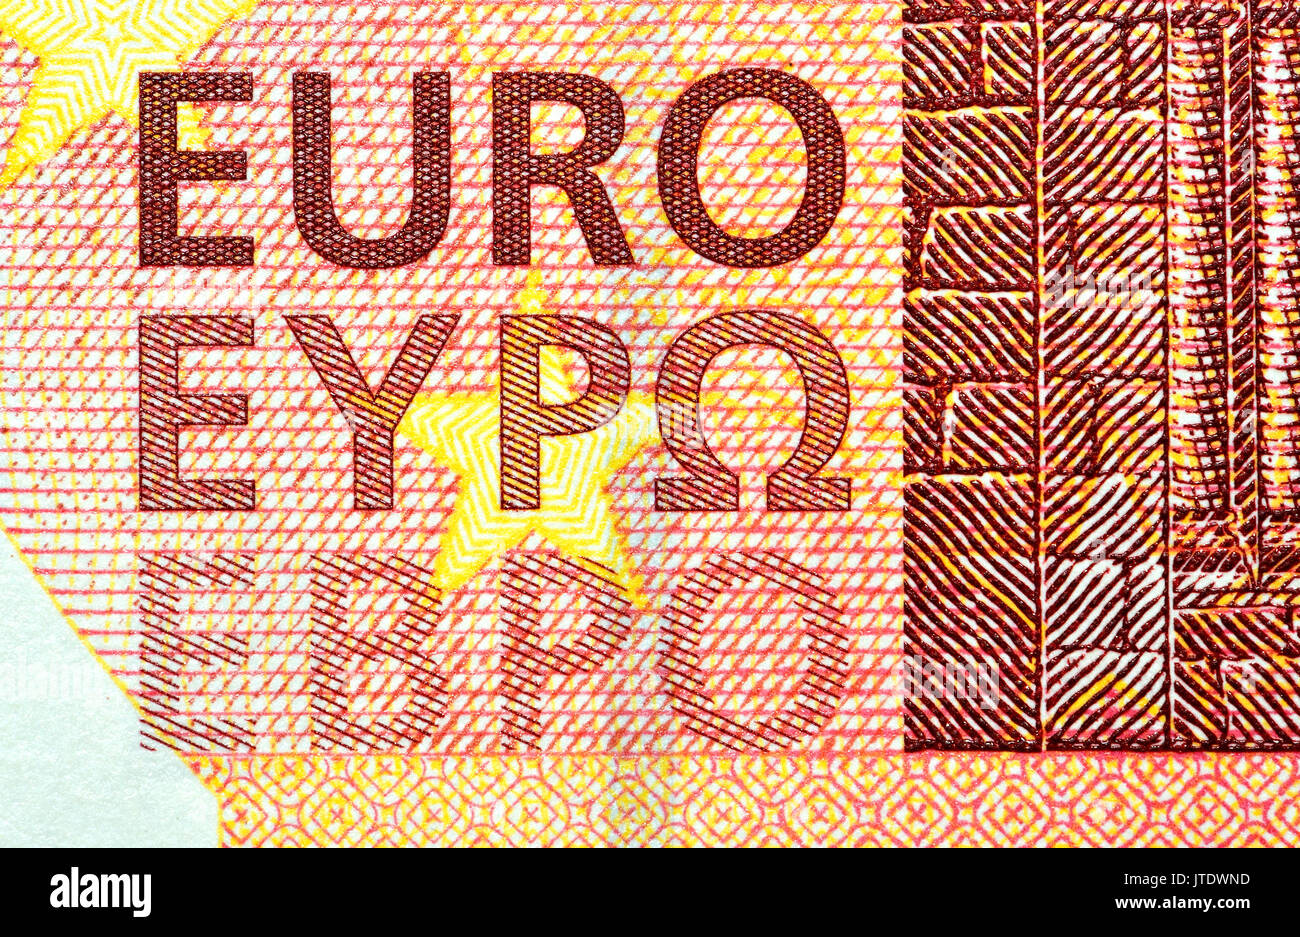 €10 banknote detail showing the word 'Euro' in three alphabets - Roman (Latin), Greek and Cyrillic - Stock Image